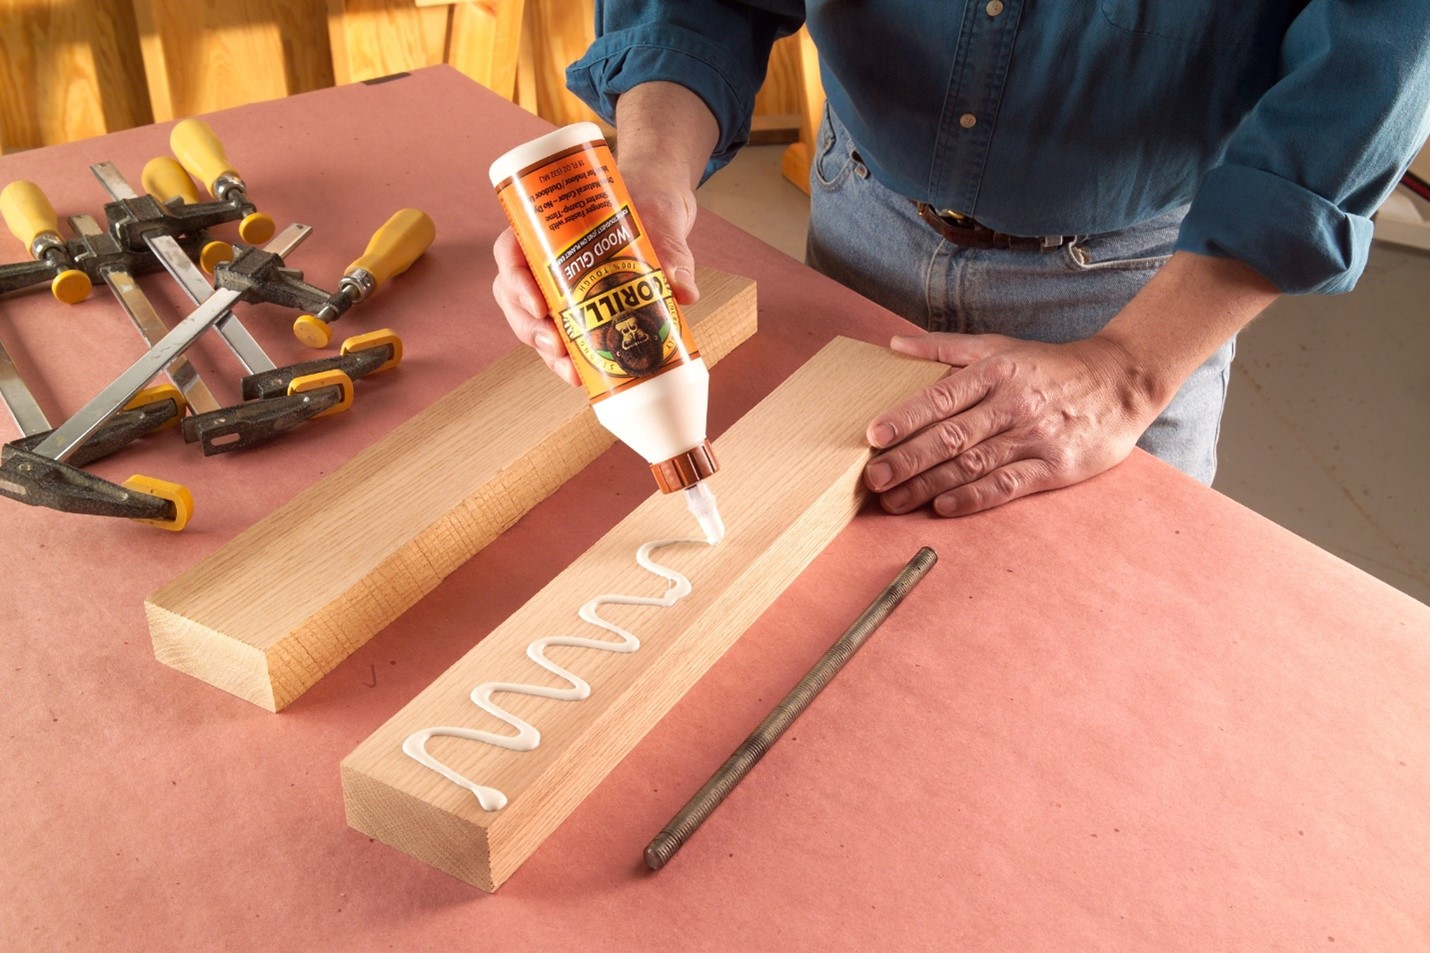 how to apply glue evenly and quickly